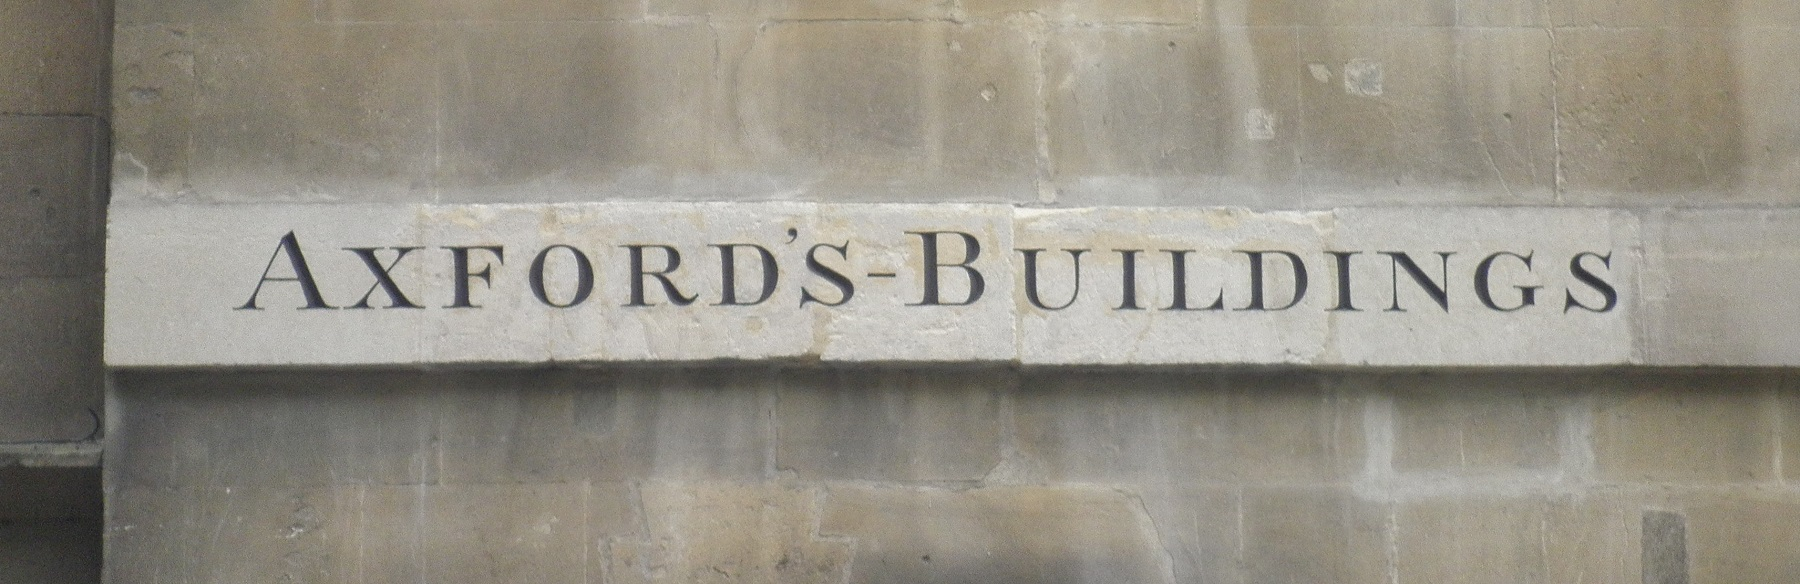 Image: clearly visible street sign for Axford's Buildings following restoration